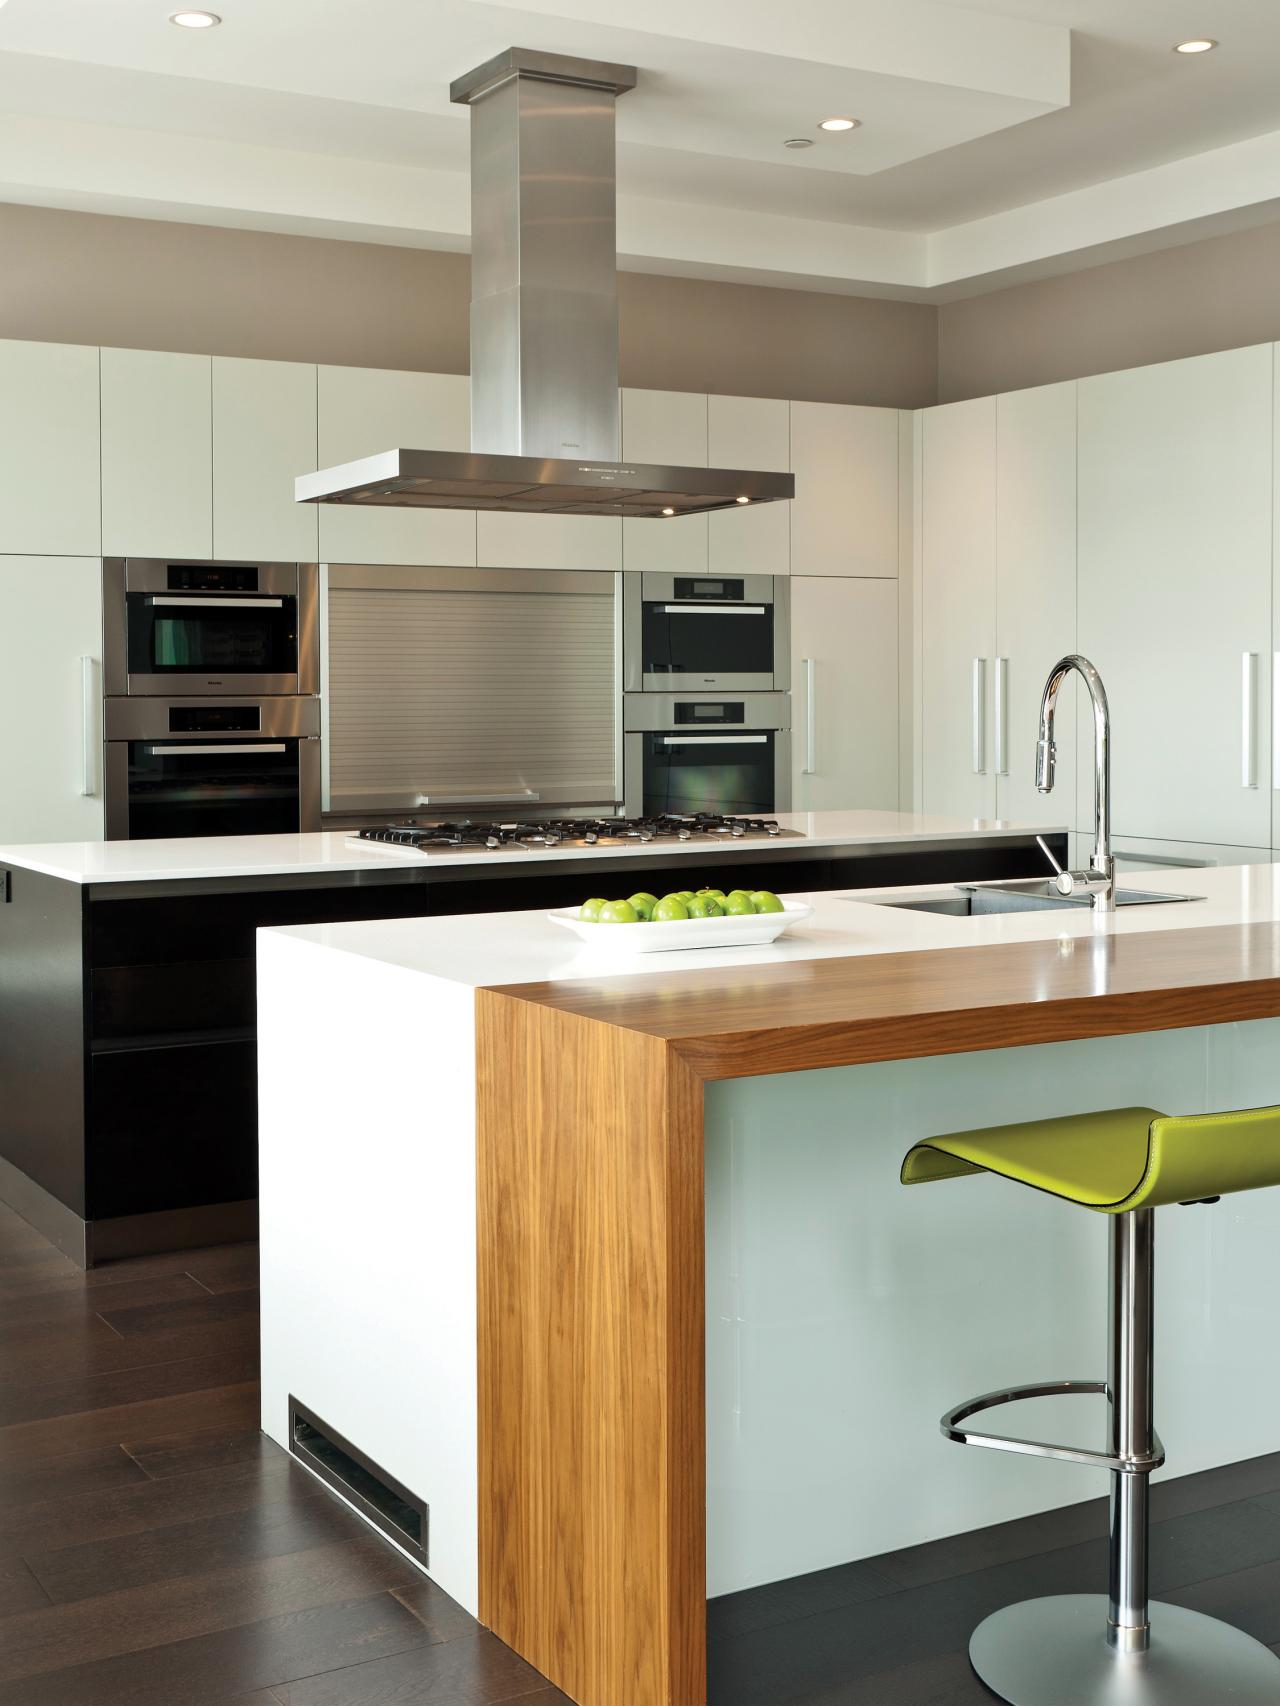 Ready made kitchen cabinets pictures options tips for Ready made kitchen units